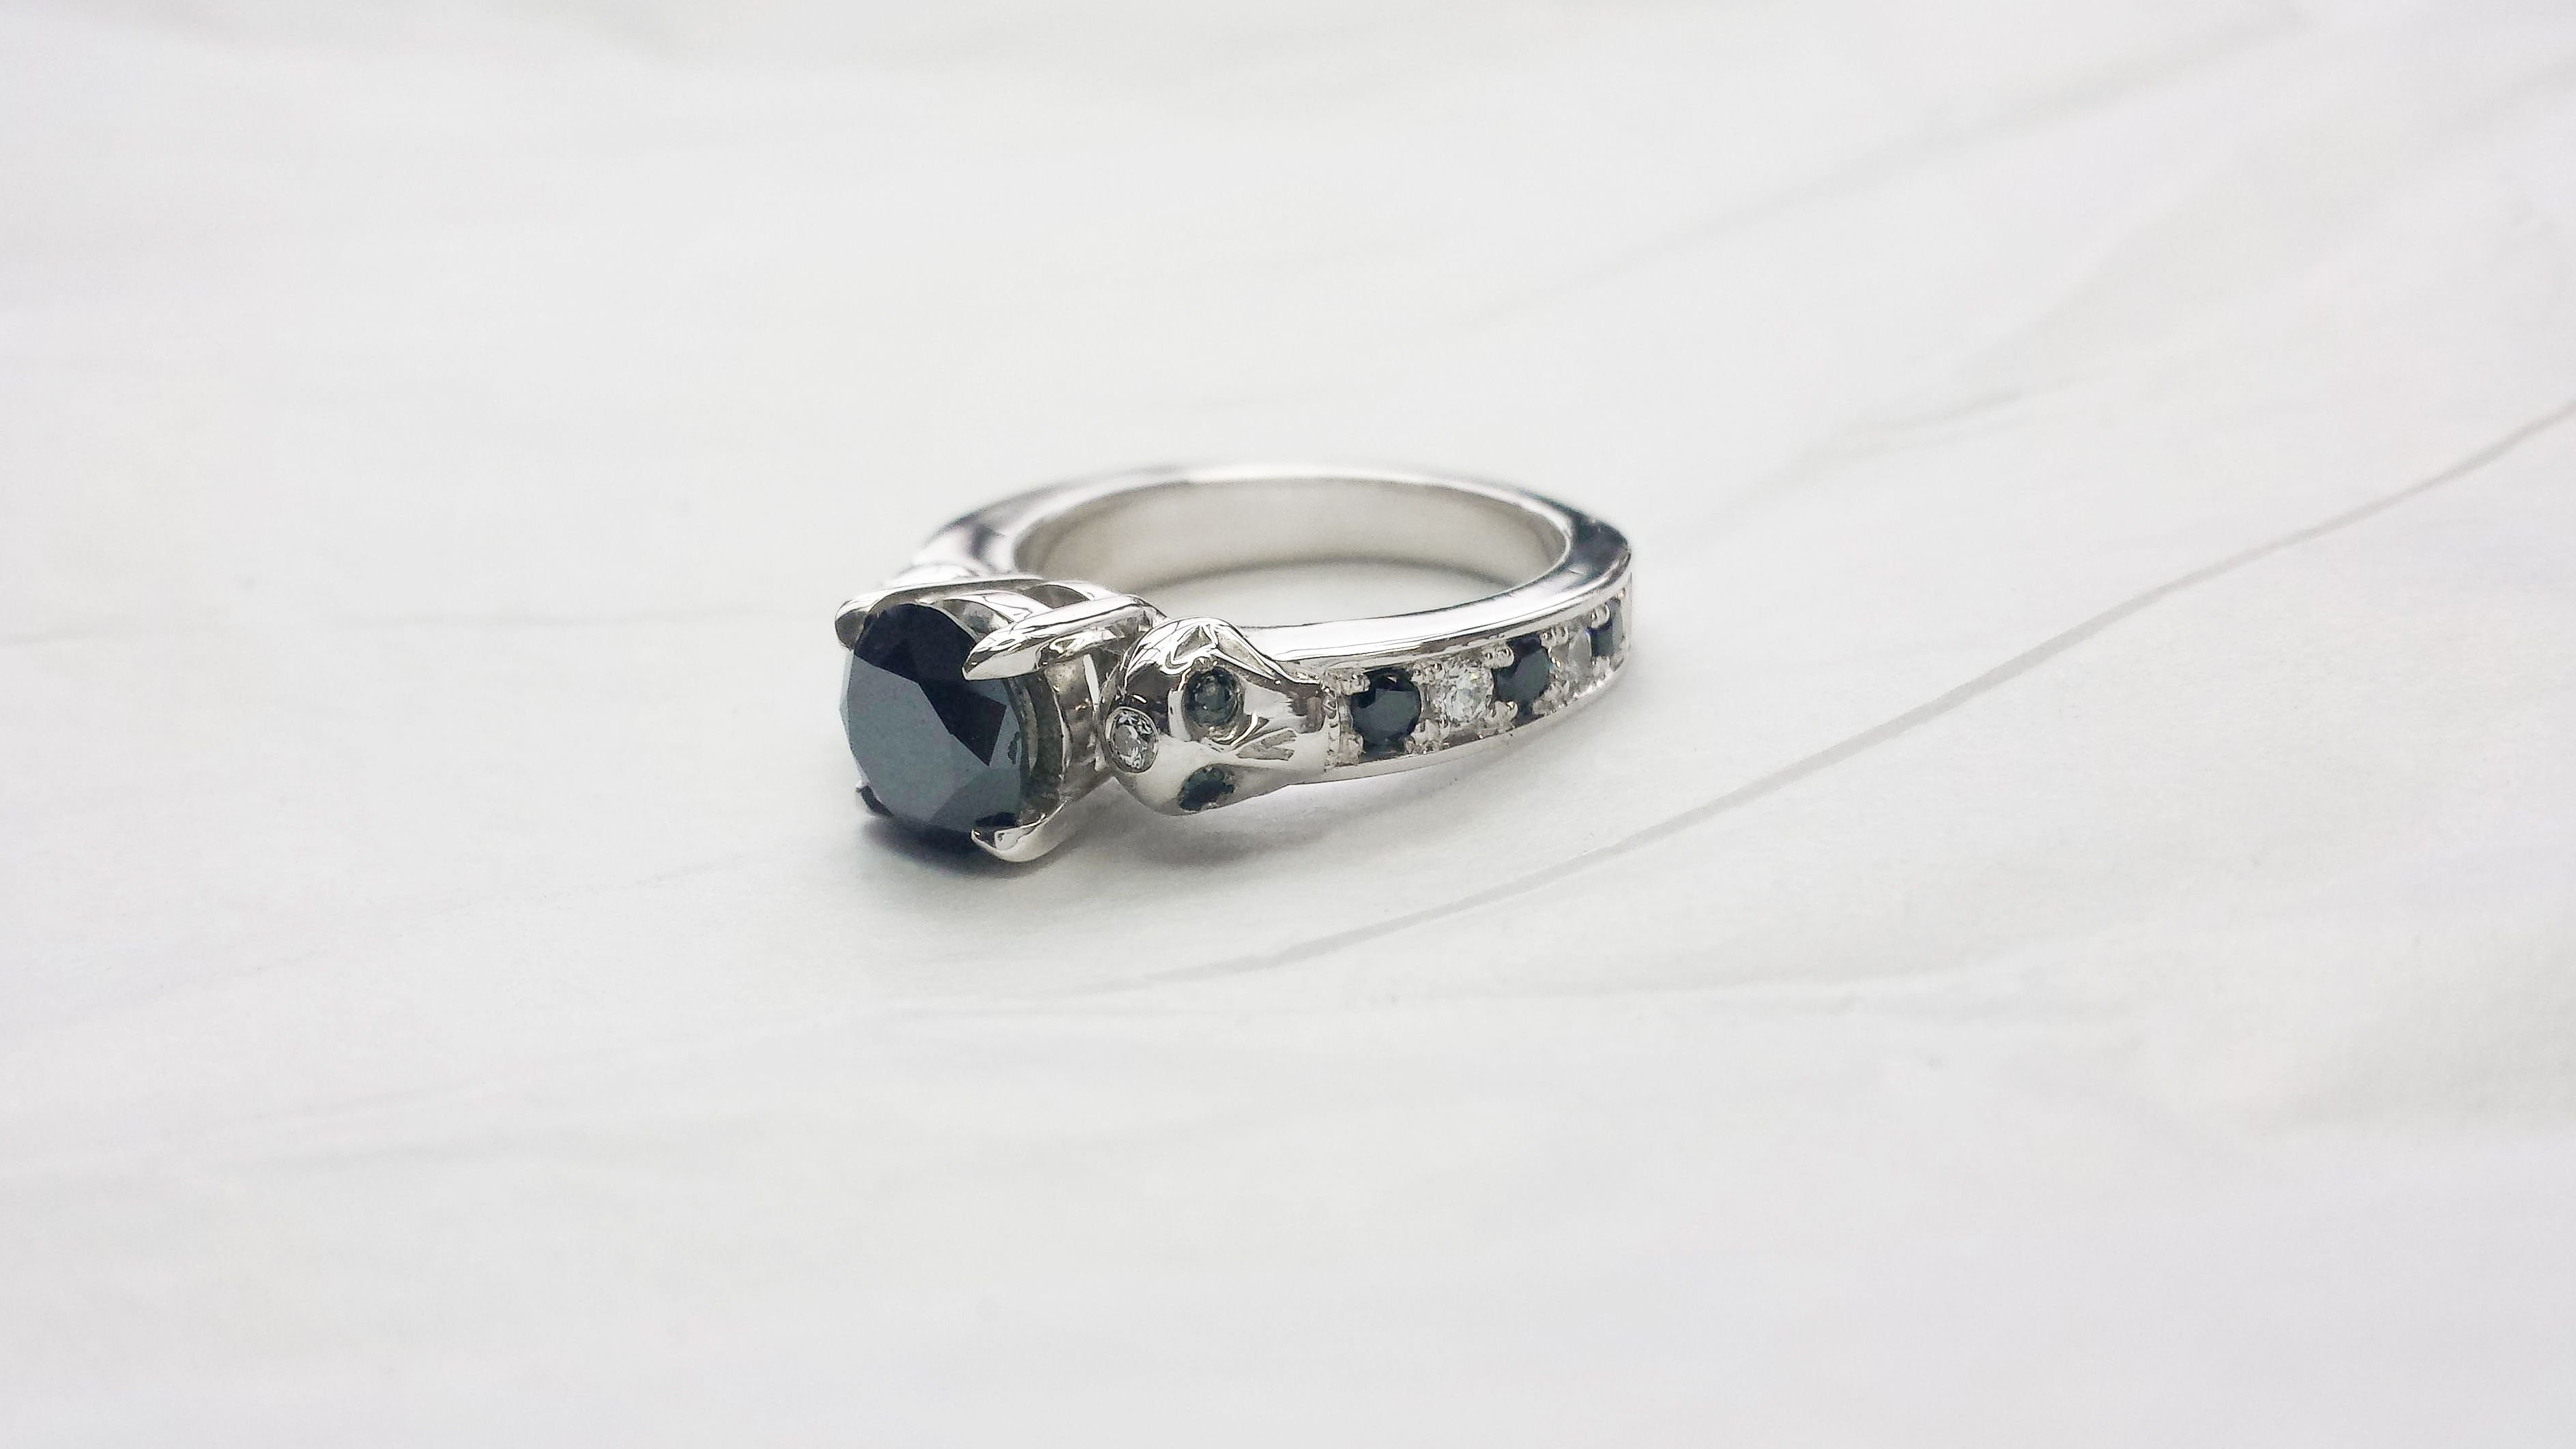 Buy a Hand Made Black White Diamond Skull Engagement Ring made